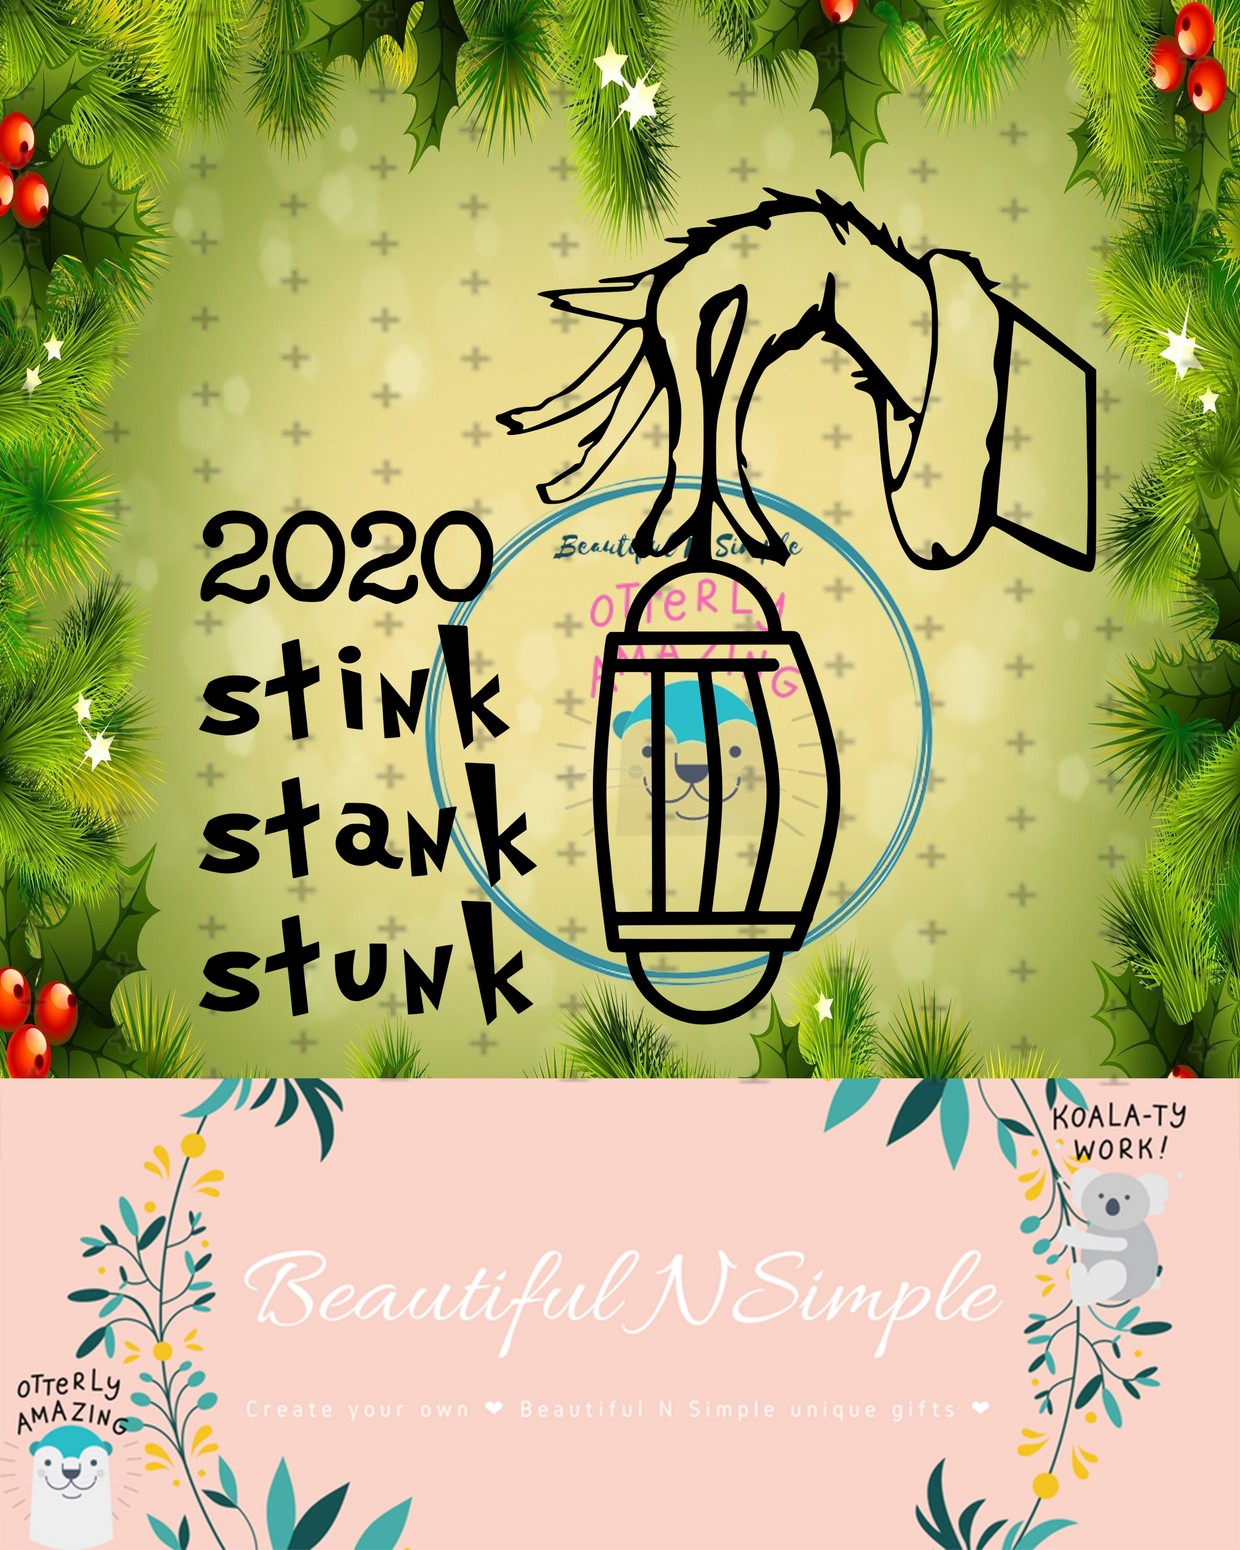 2020 Stink Stank Stunk Inspired By The Grinch Svg And Beautifulnsimple